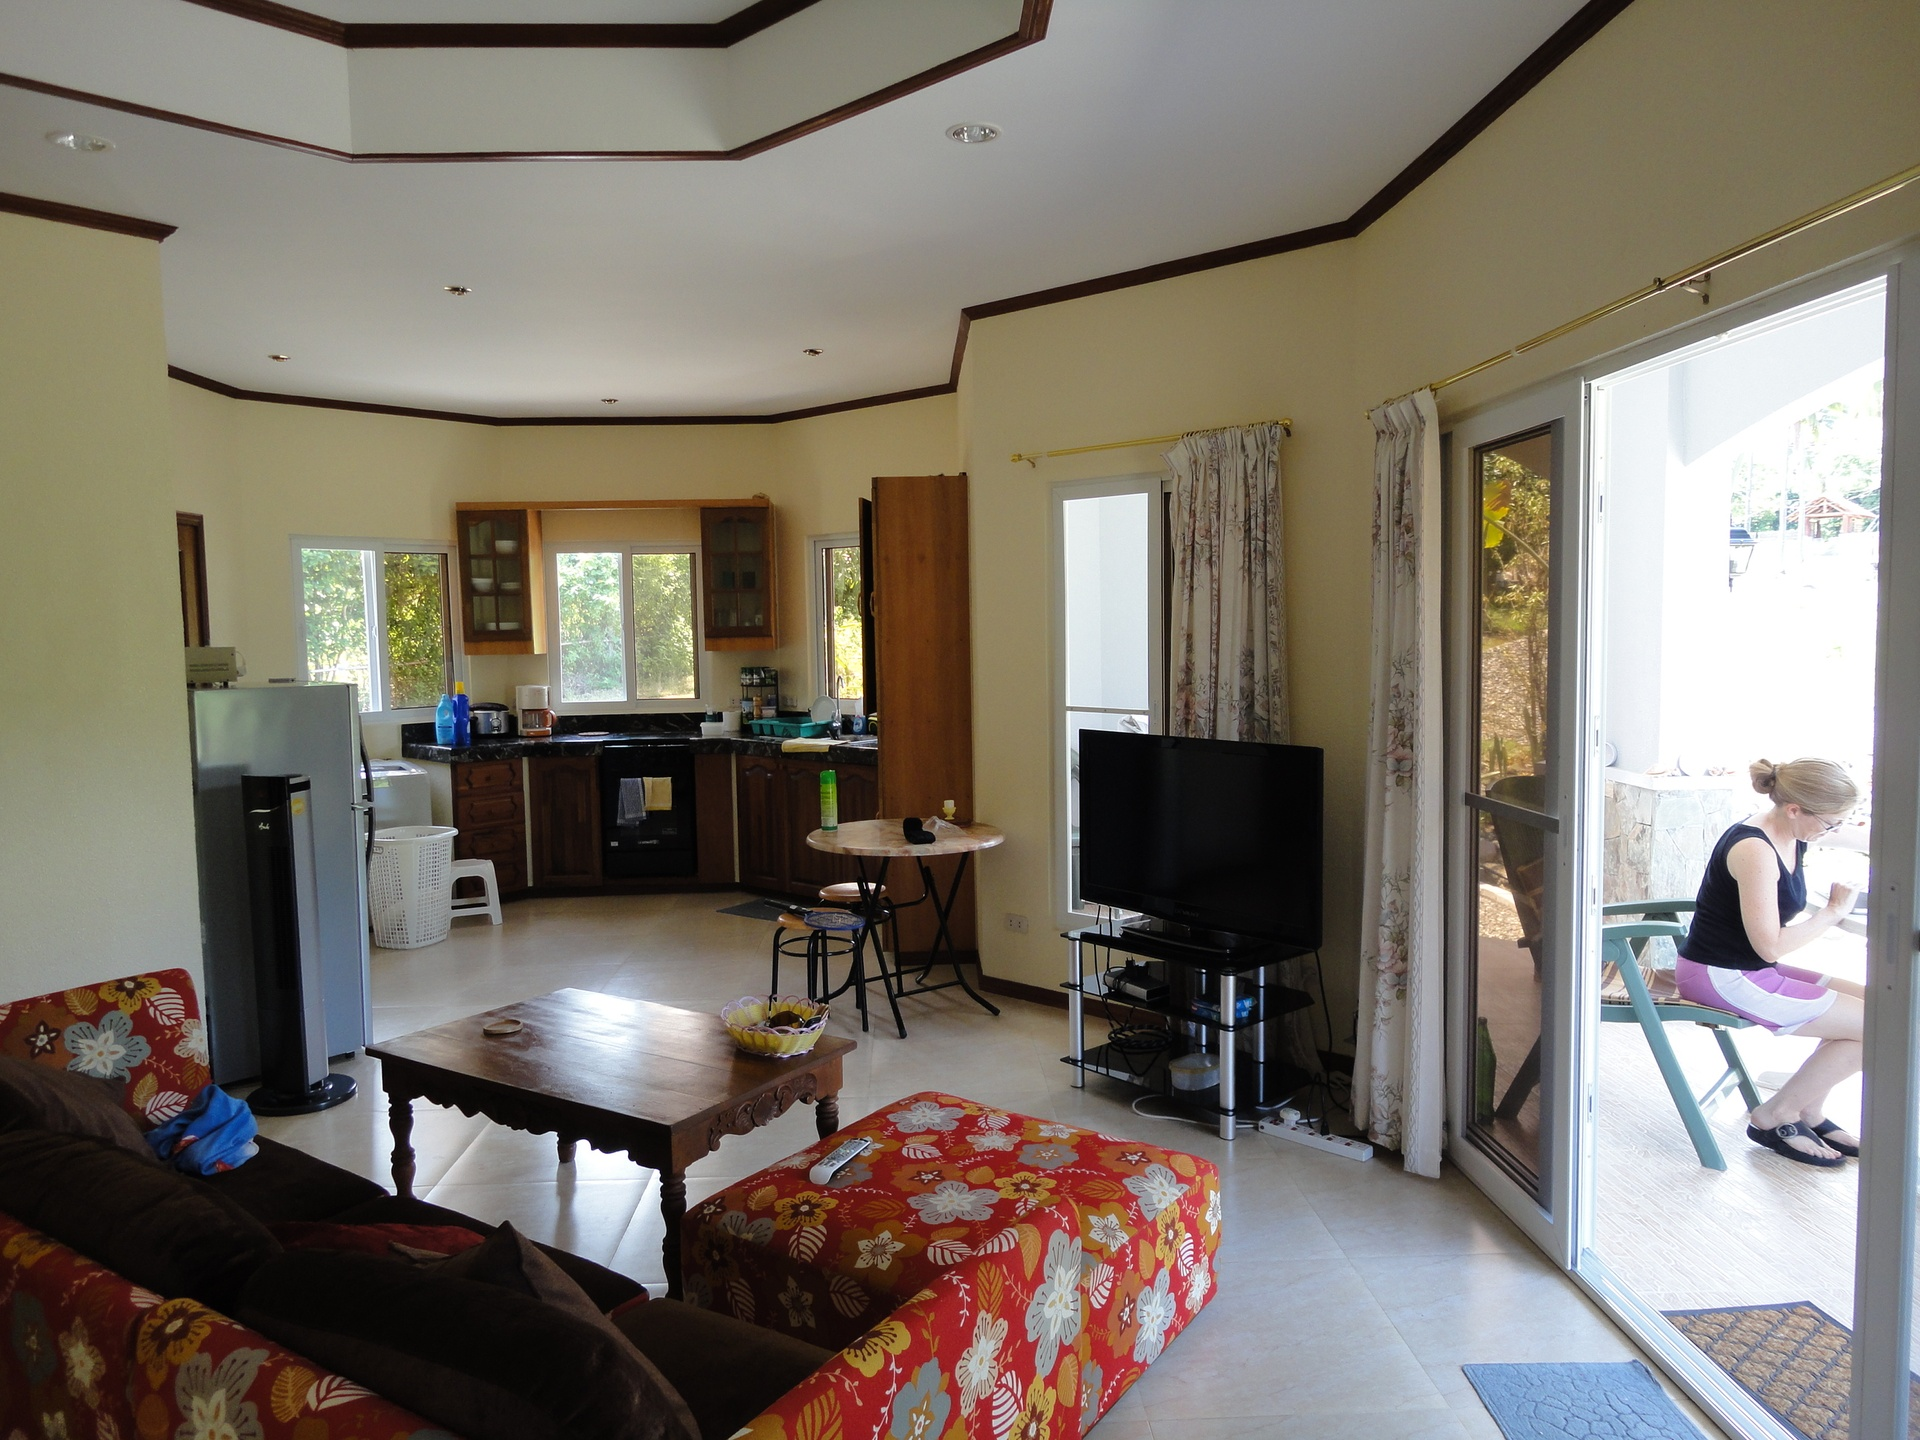 Phenomenal Beach House For Sale And Rent Philippines Download Free Architecture Designs Sospemadebymaigaardcom